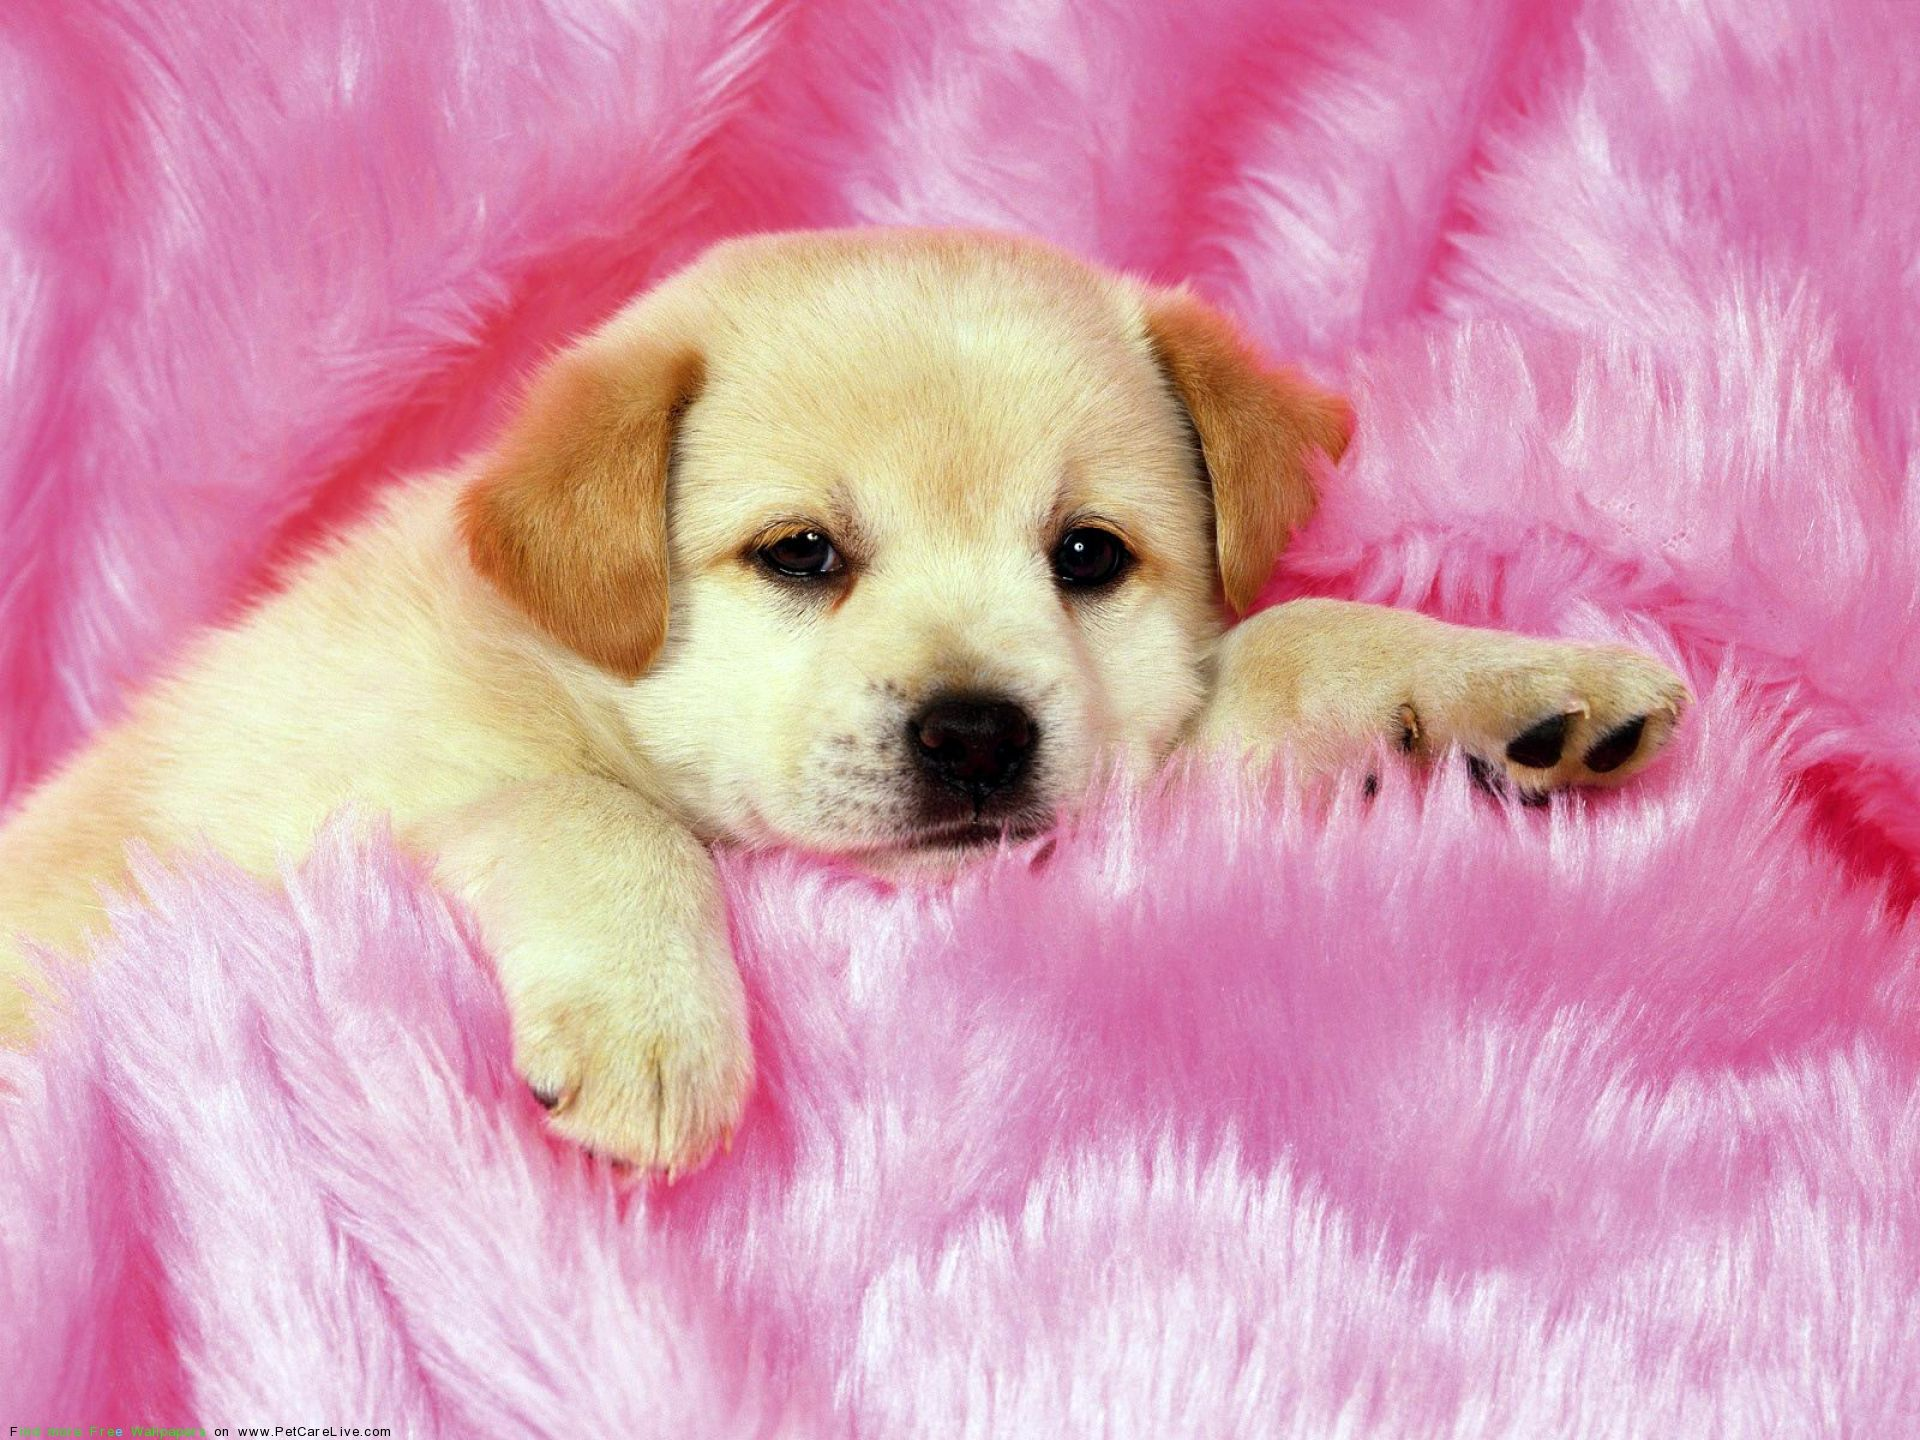 Cute Little Puppys Puppy Pictures Widescreen With Small High Quality For Laptop Ideas About Wallpaper Puppies On Hd